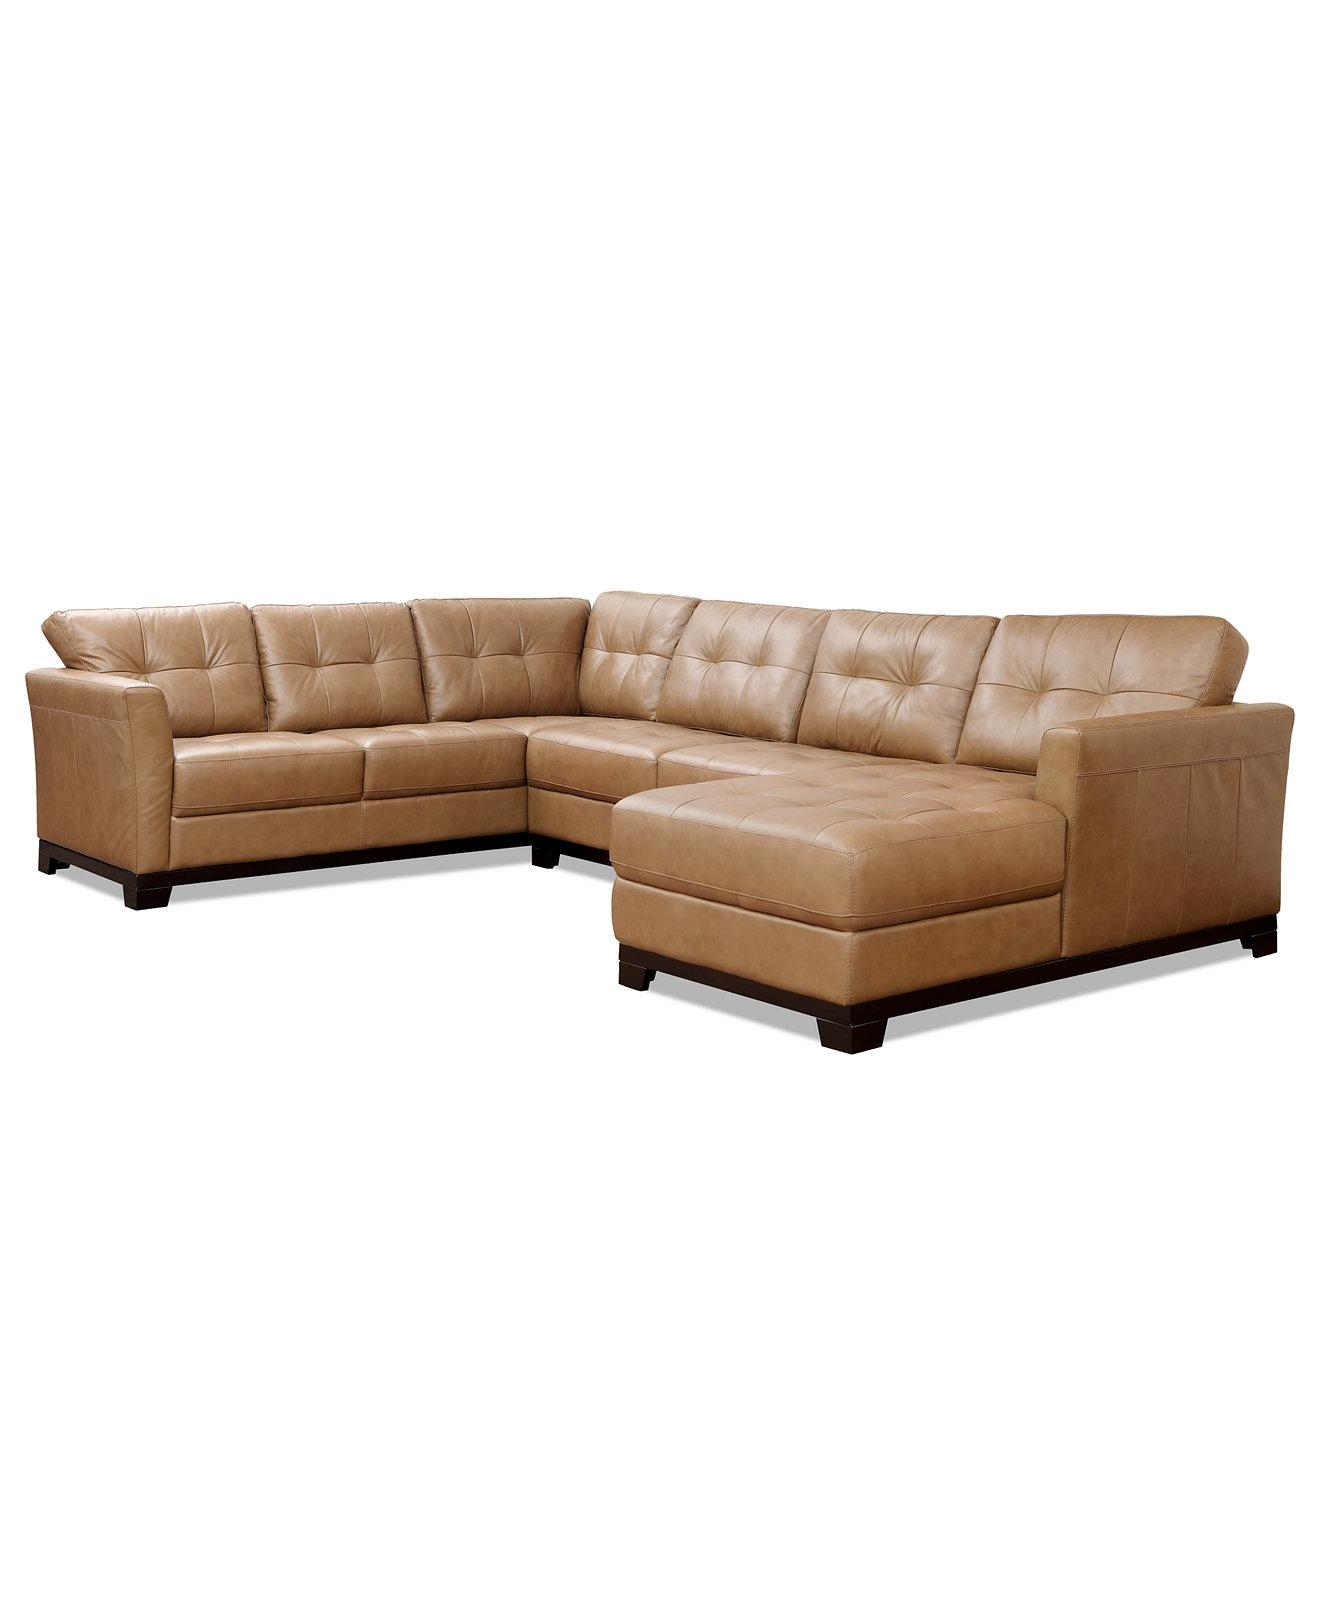 Sectional Sofas Macys 41 With Sectional Sofas Macys | Jinanhongyu Inside Macys Leather Sectional Sofa (Image 10 of 20)